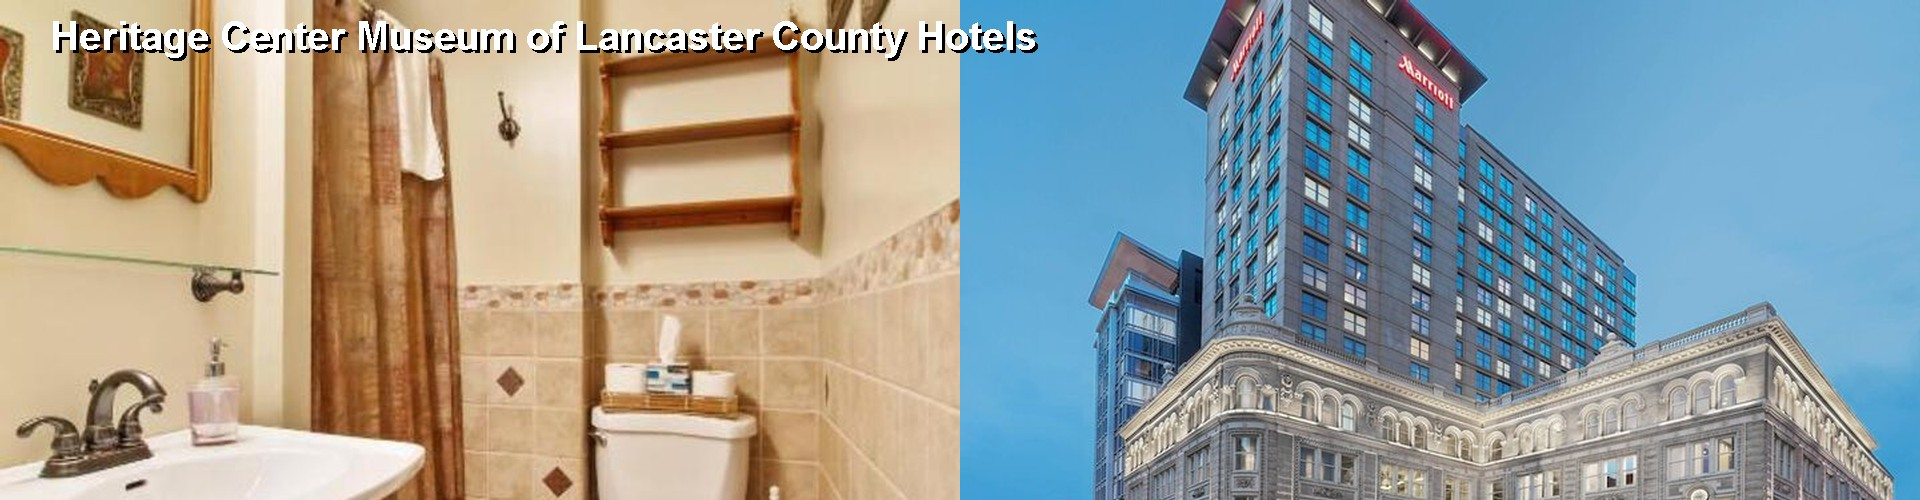 5 Best Hotels near Heritage Center Museum of Lancaster County